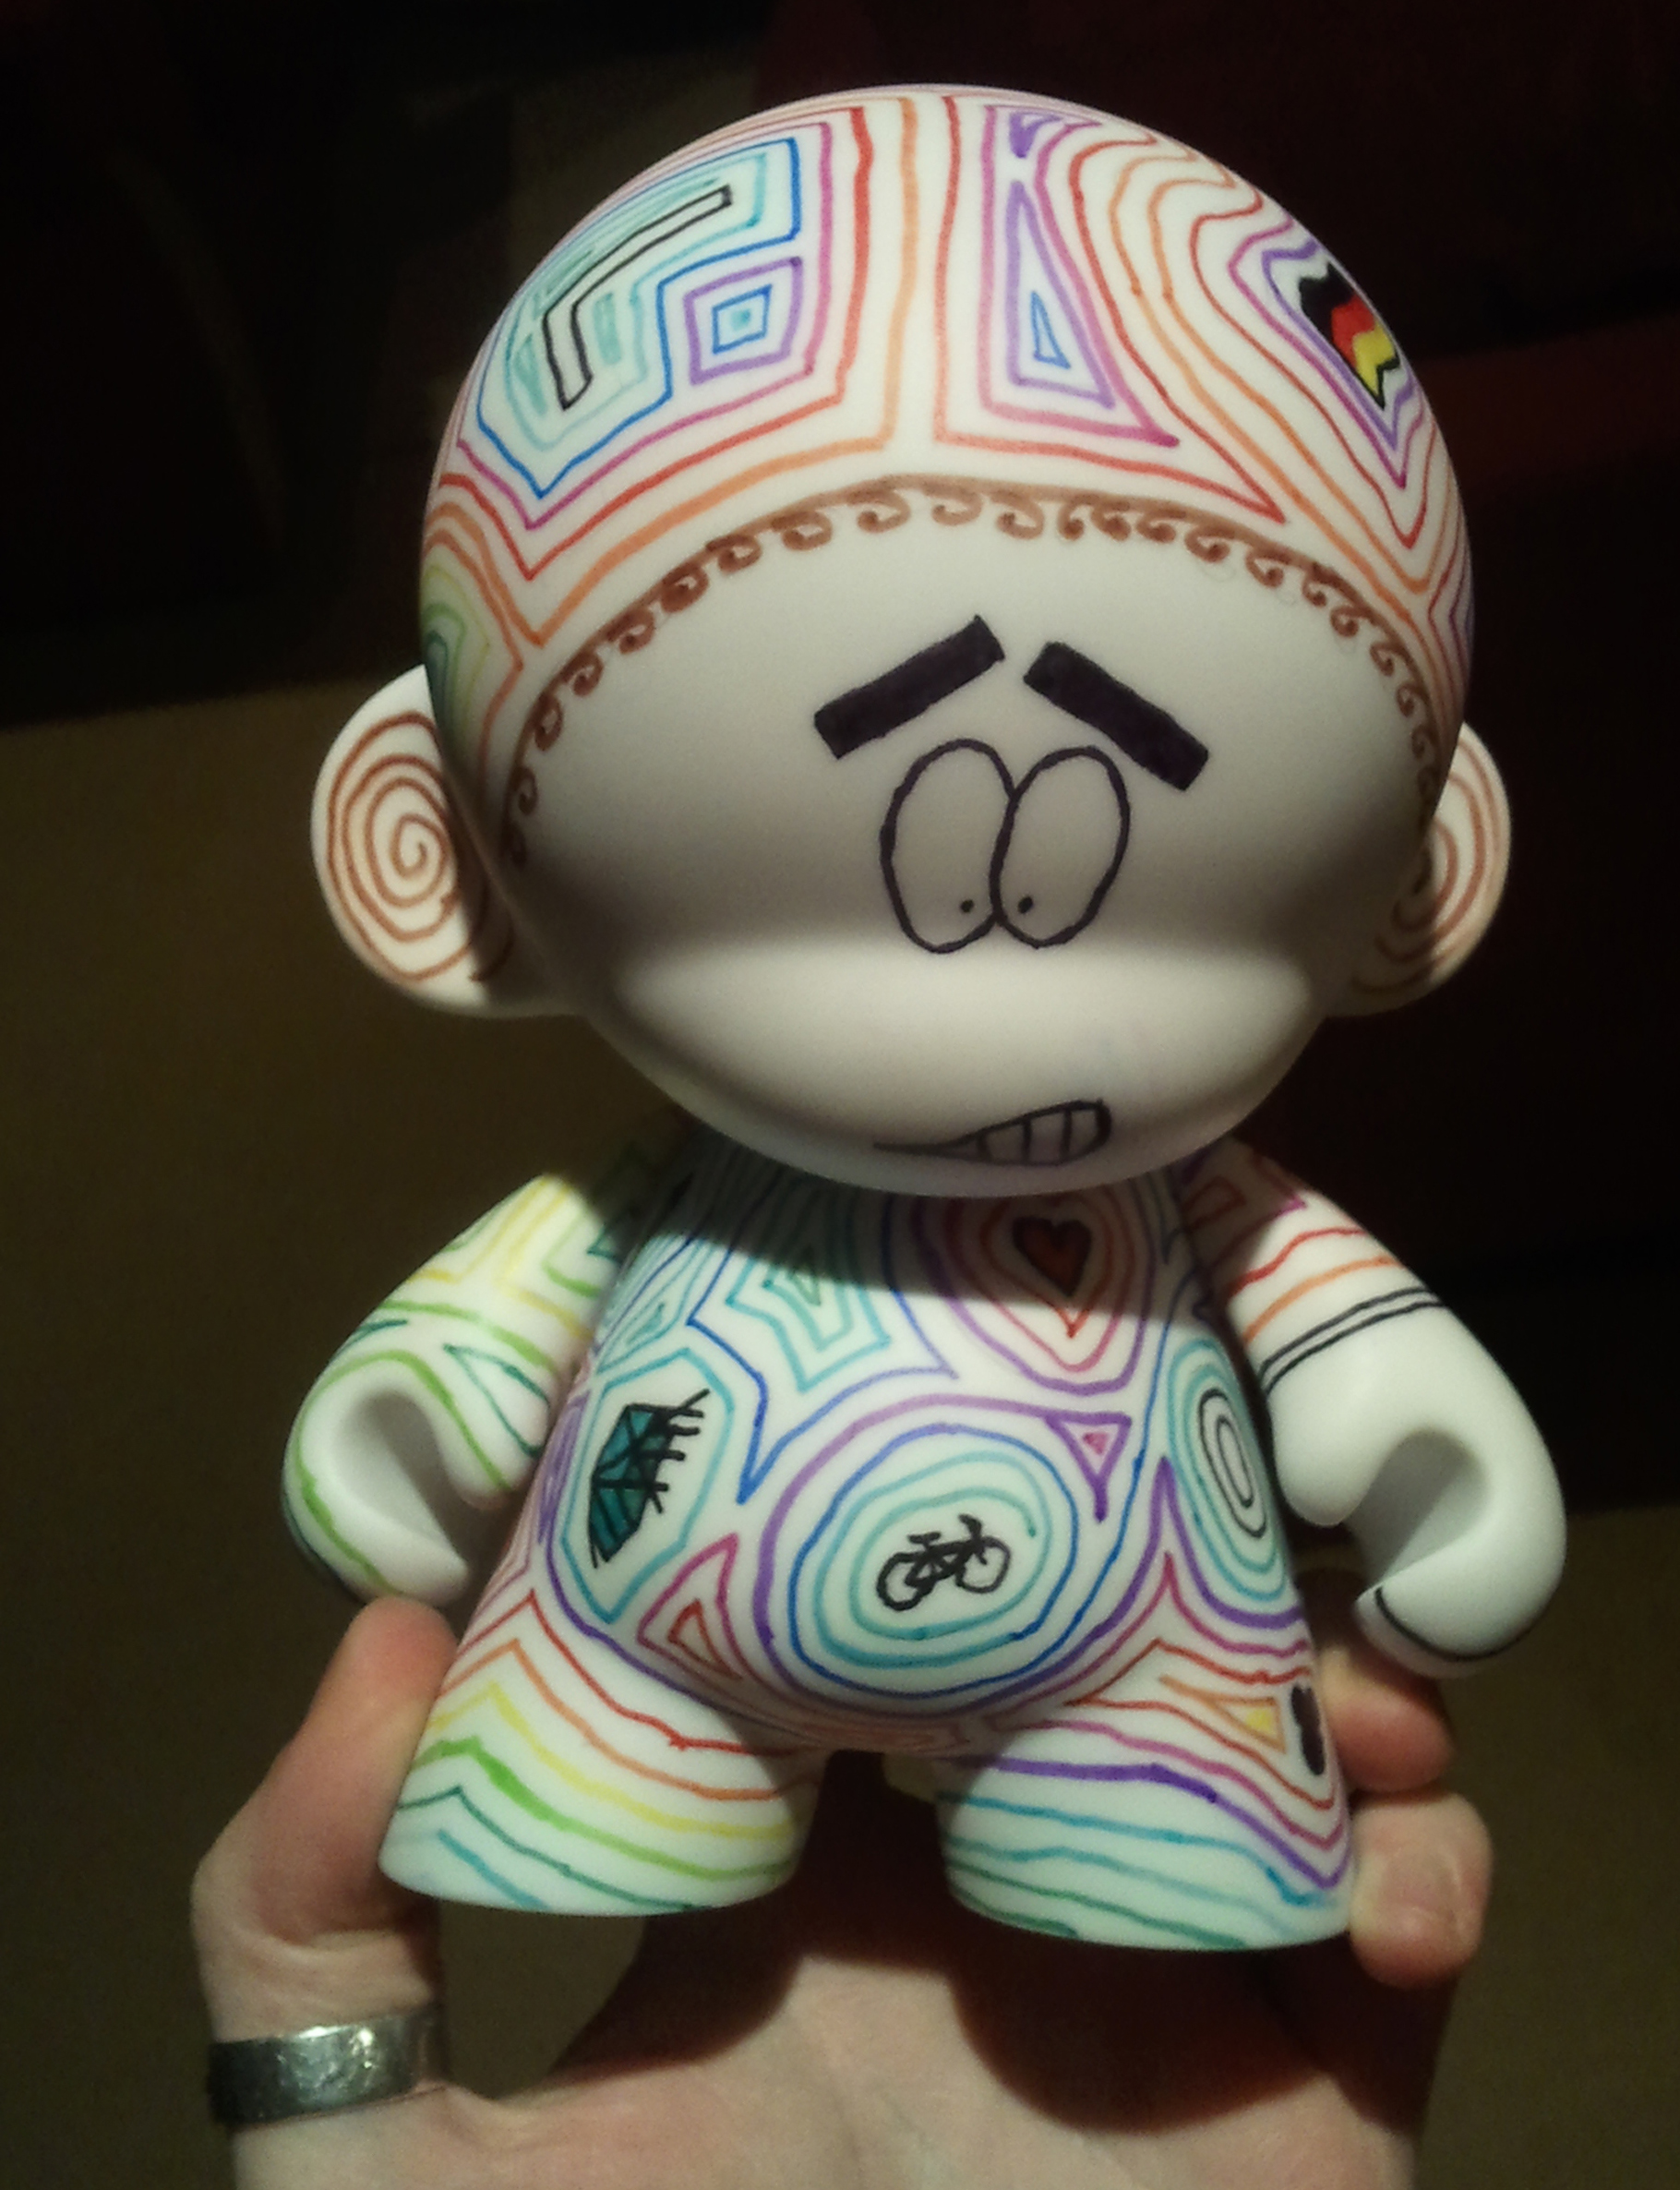 Sweet Personalised Hidden-Image Munny Doll Gift